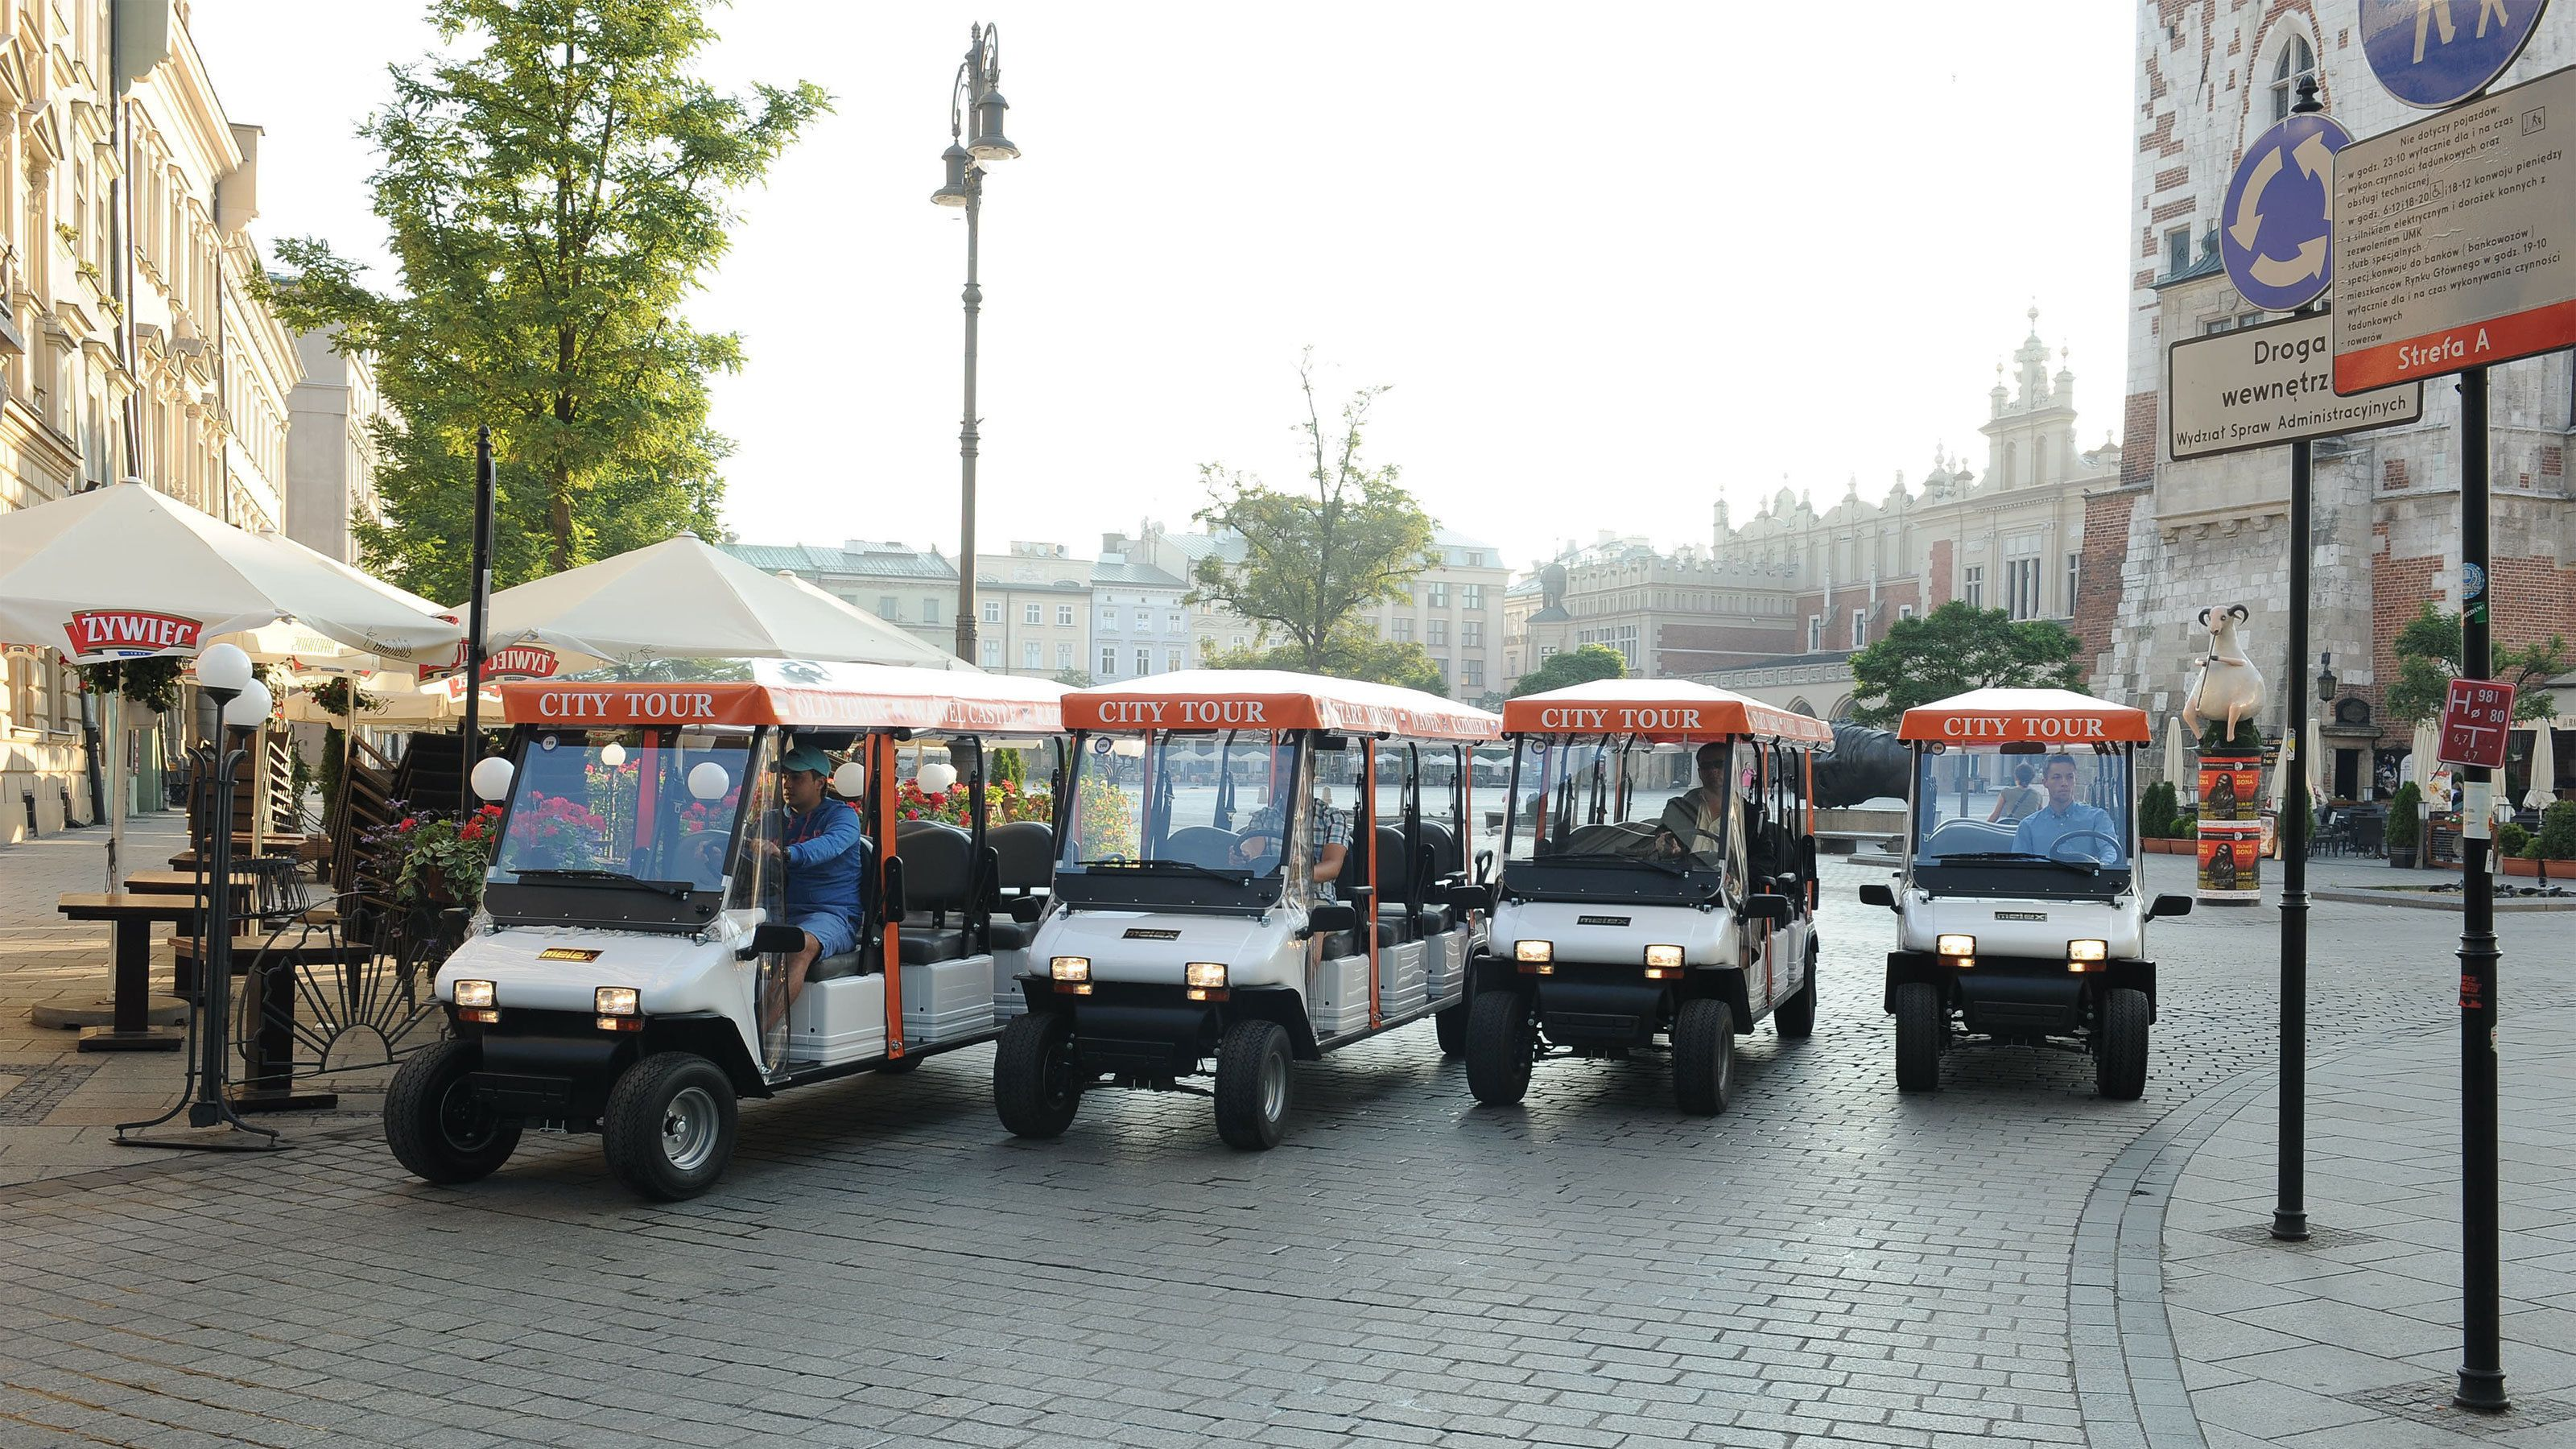 Eco vehicles driving tourists around city to sightsee.